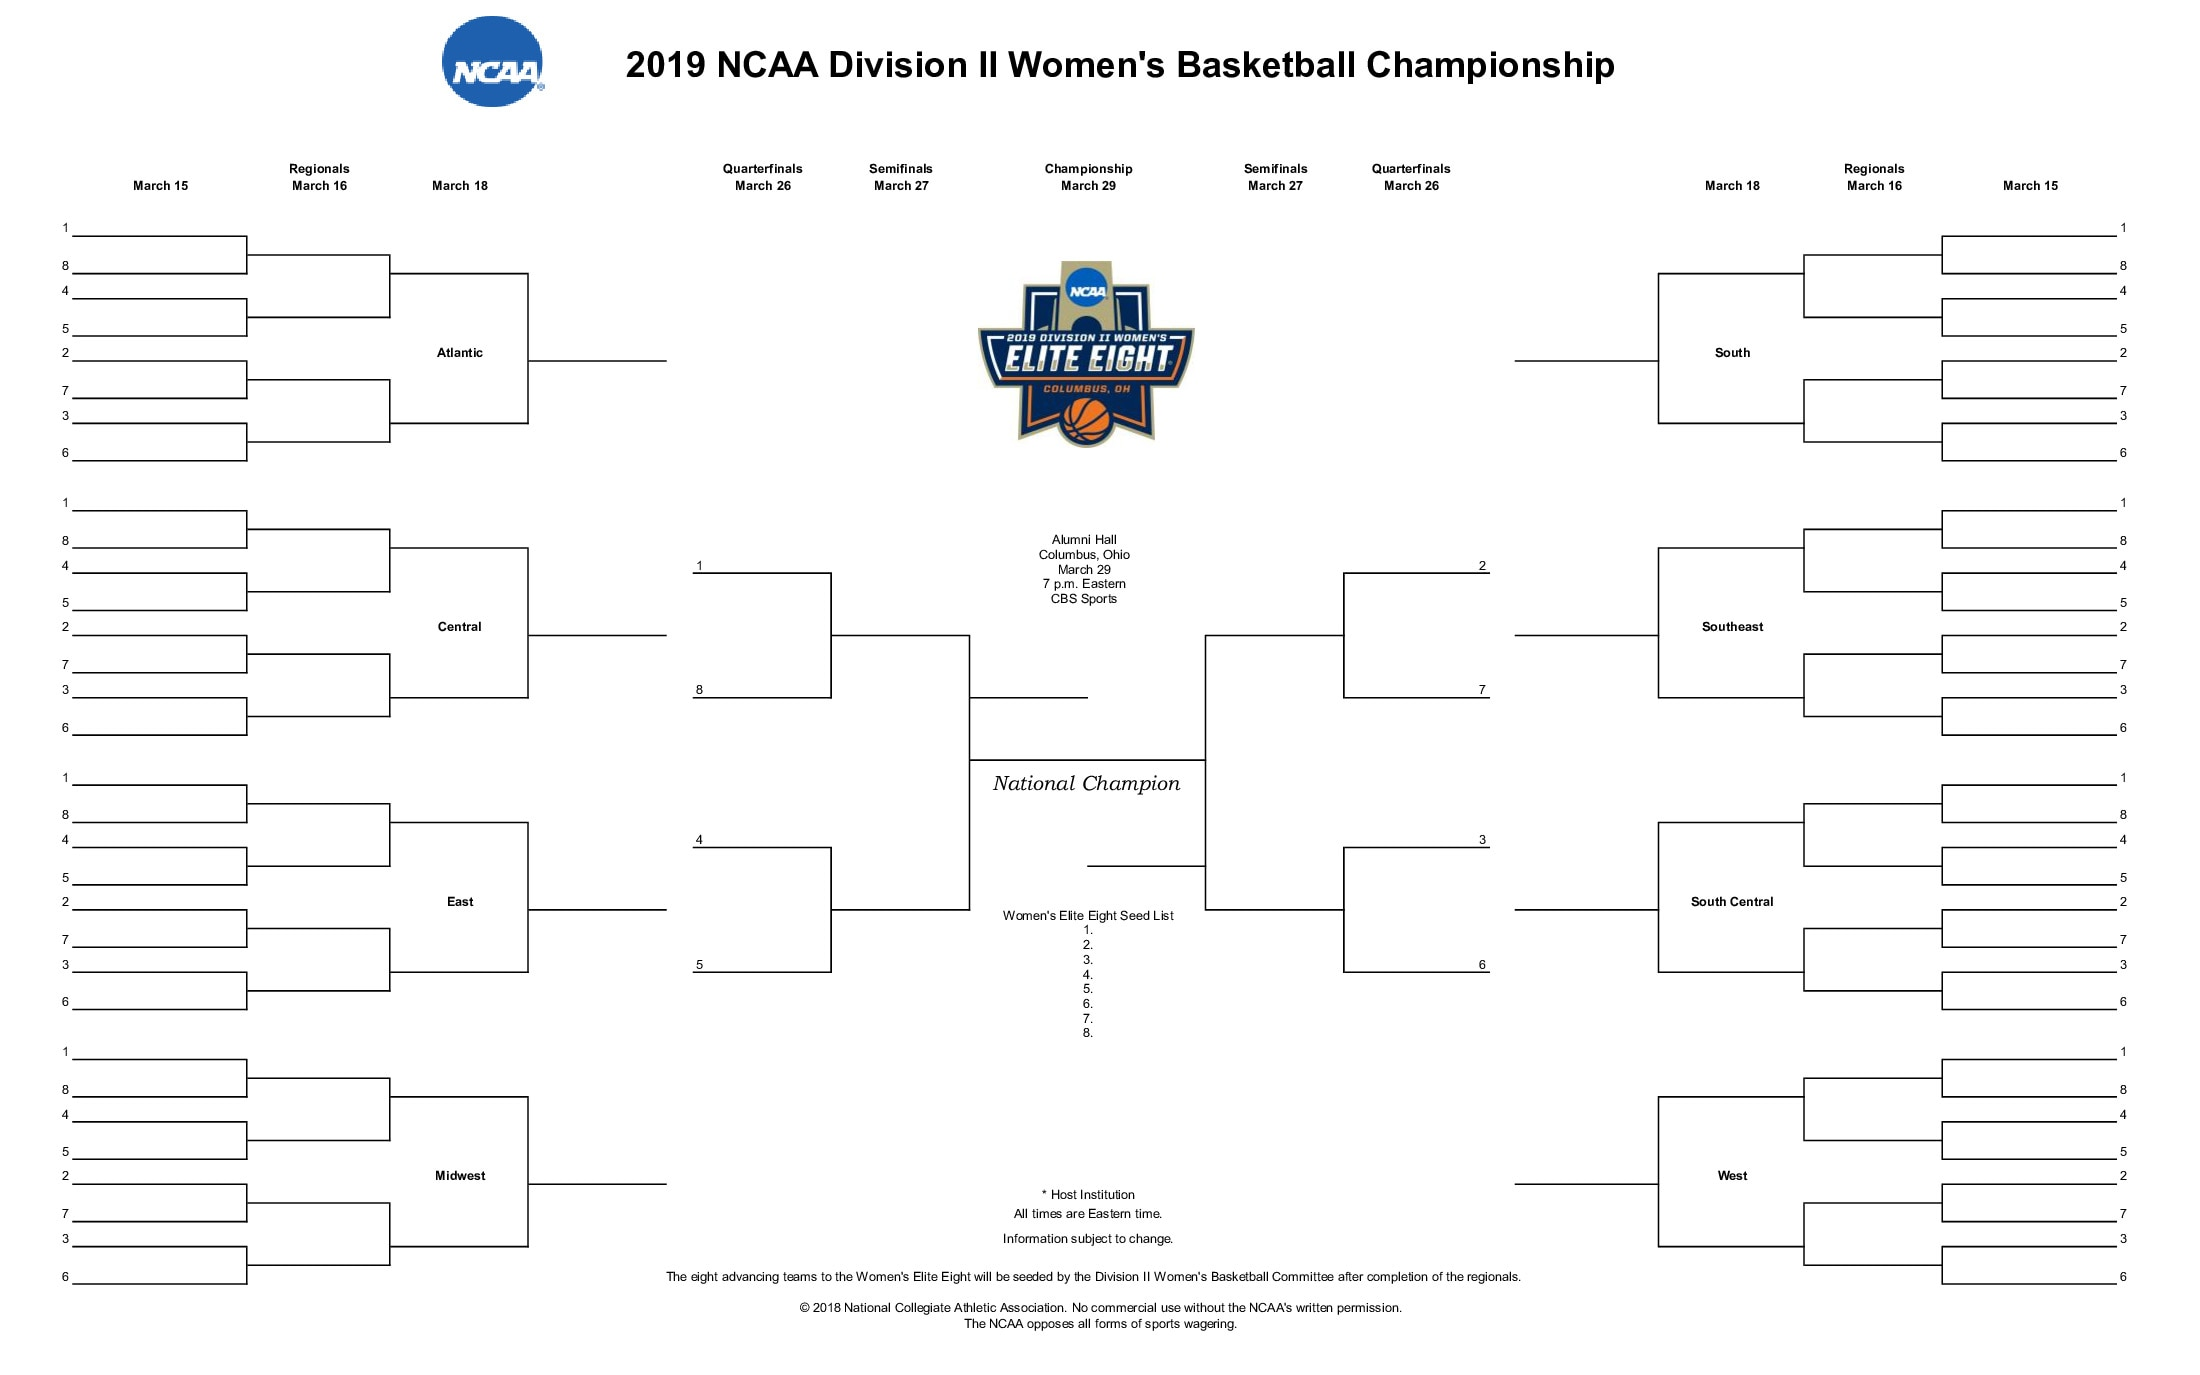 The 2019 DII women's basketball bracket